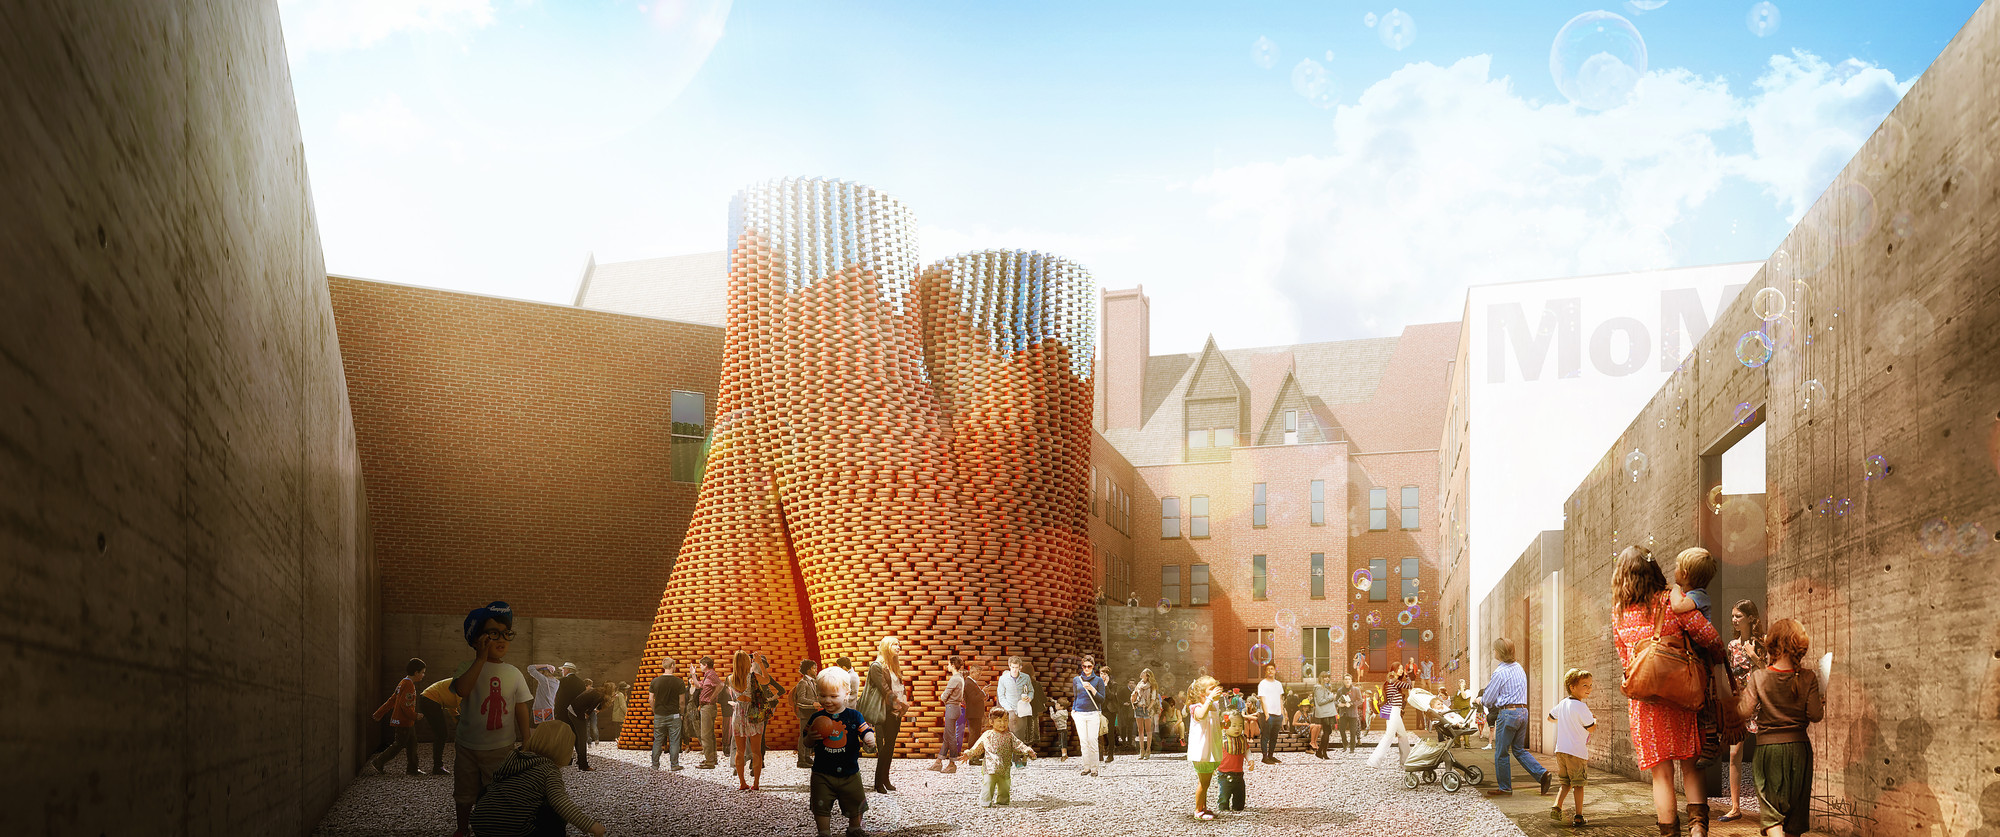 The Living Wins P.S.1 with Compostable Brick Tower, © The Living